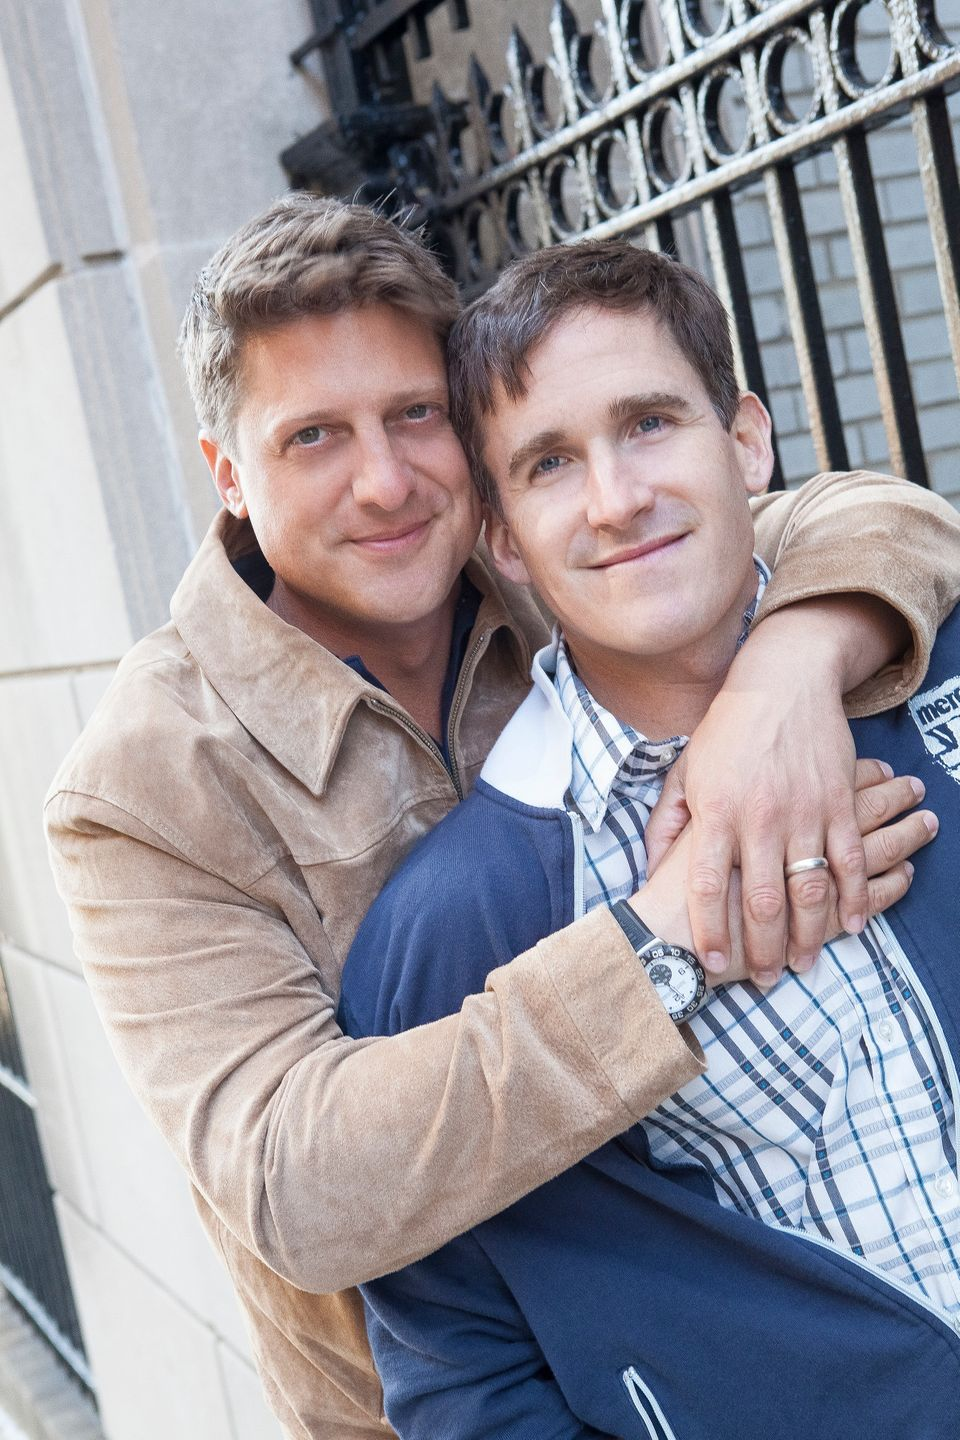 Kevin and Christopher met doing <em>Beauty and the Beast</em> in 2000. They have been together ever since and will have been